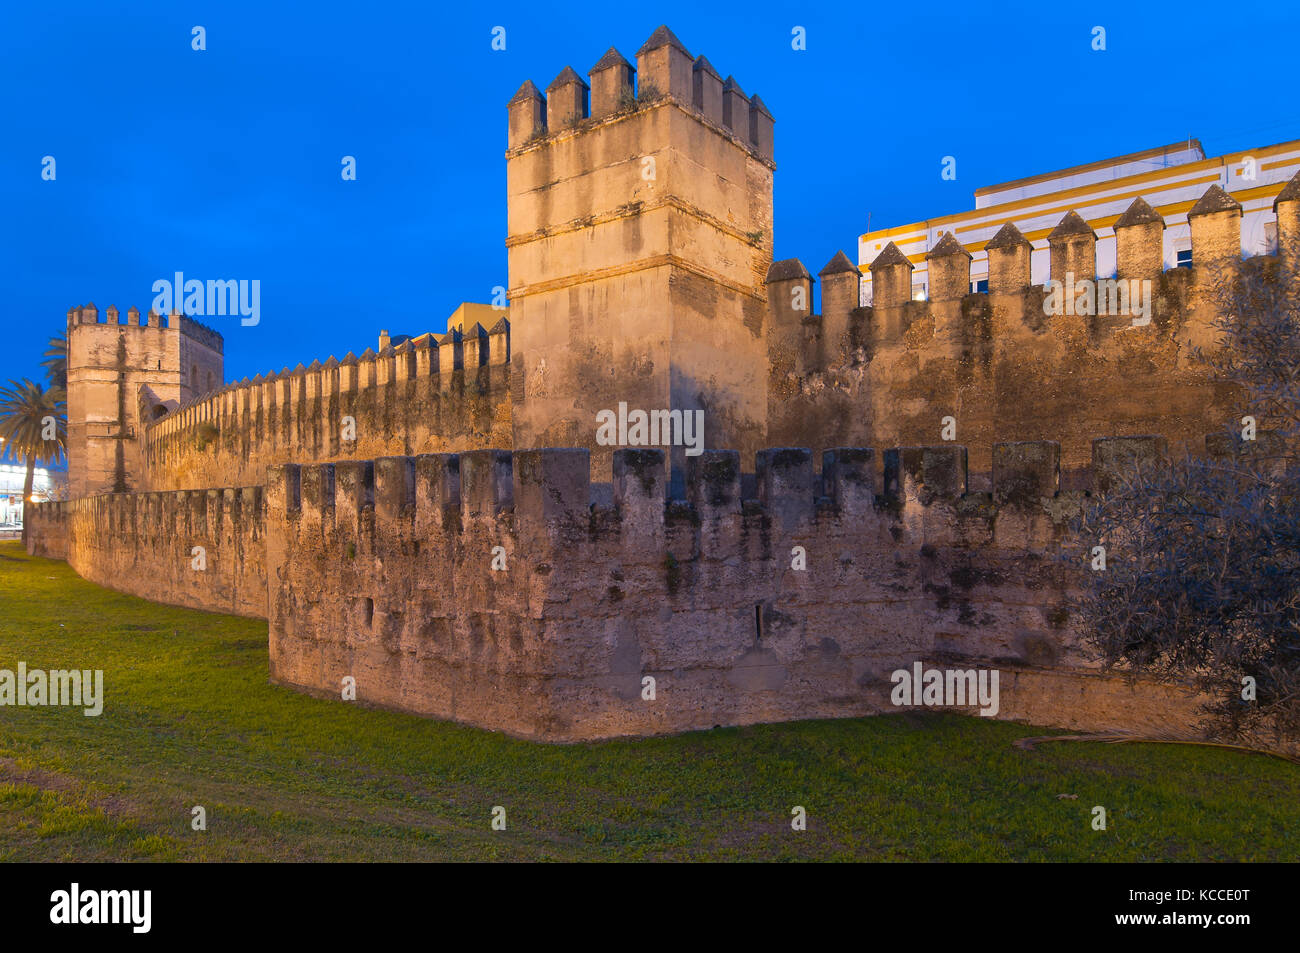 Walls of the Macarena at dusk, Seville, Region of Andalusia, Spain, Europe - Stock Image